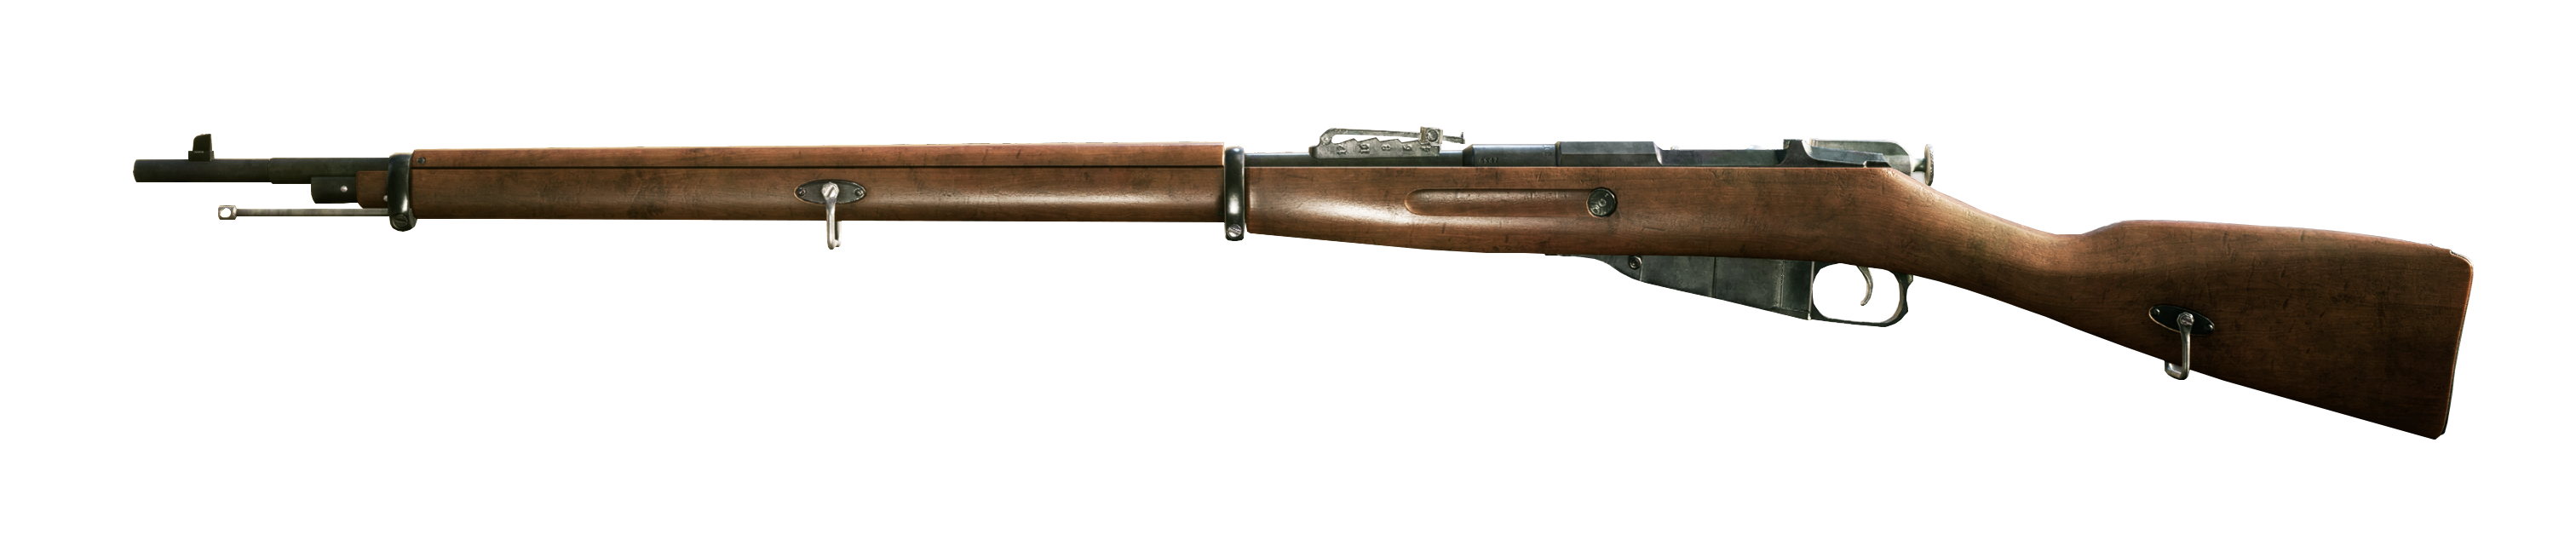 Nagant m battlefield wiki. Mosin clip png black and white